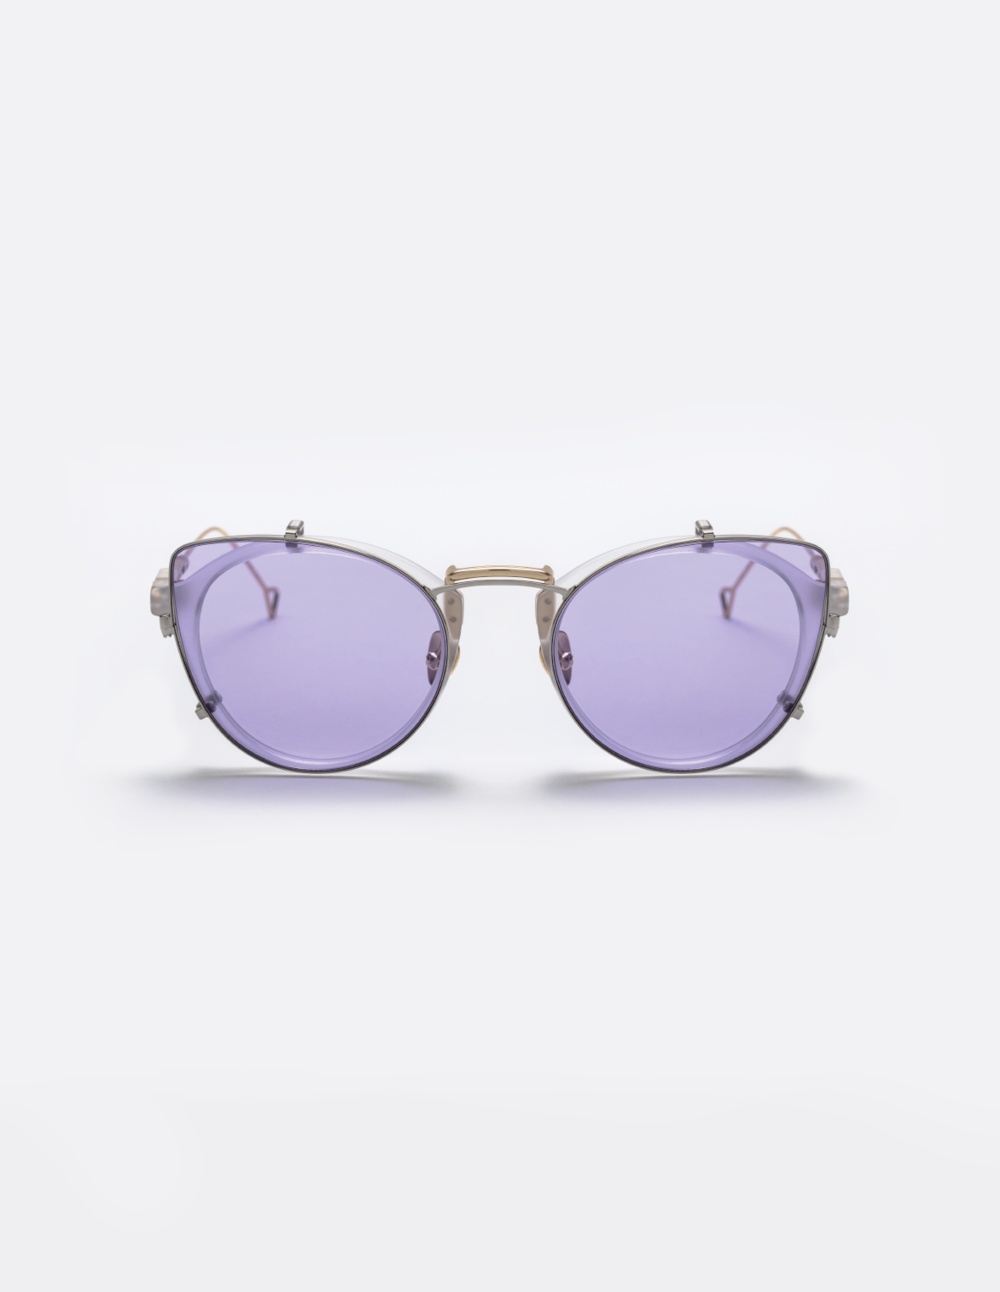 BLADE (C1)    SILVER LILAC    $289       VIEW